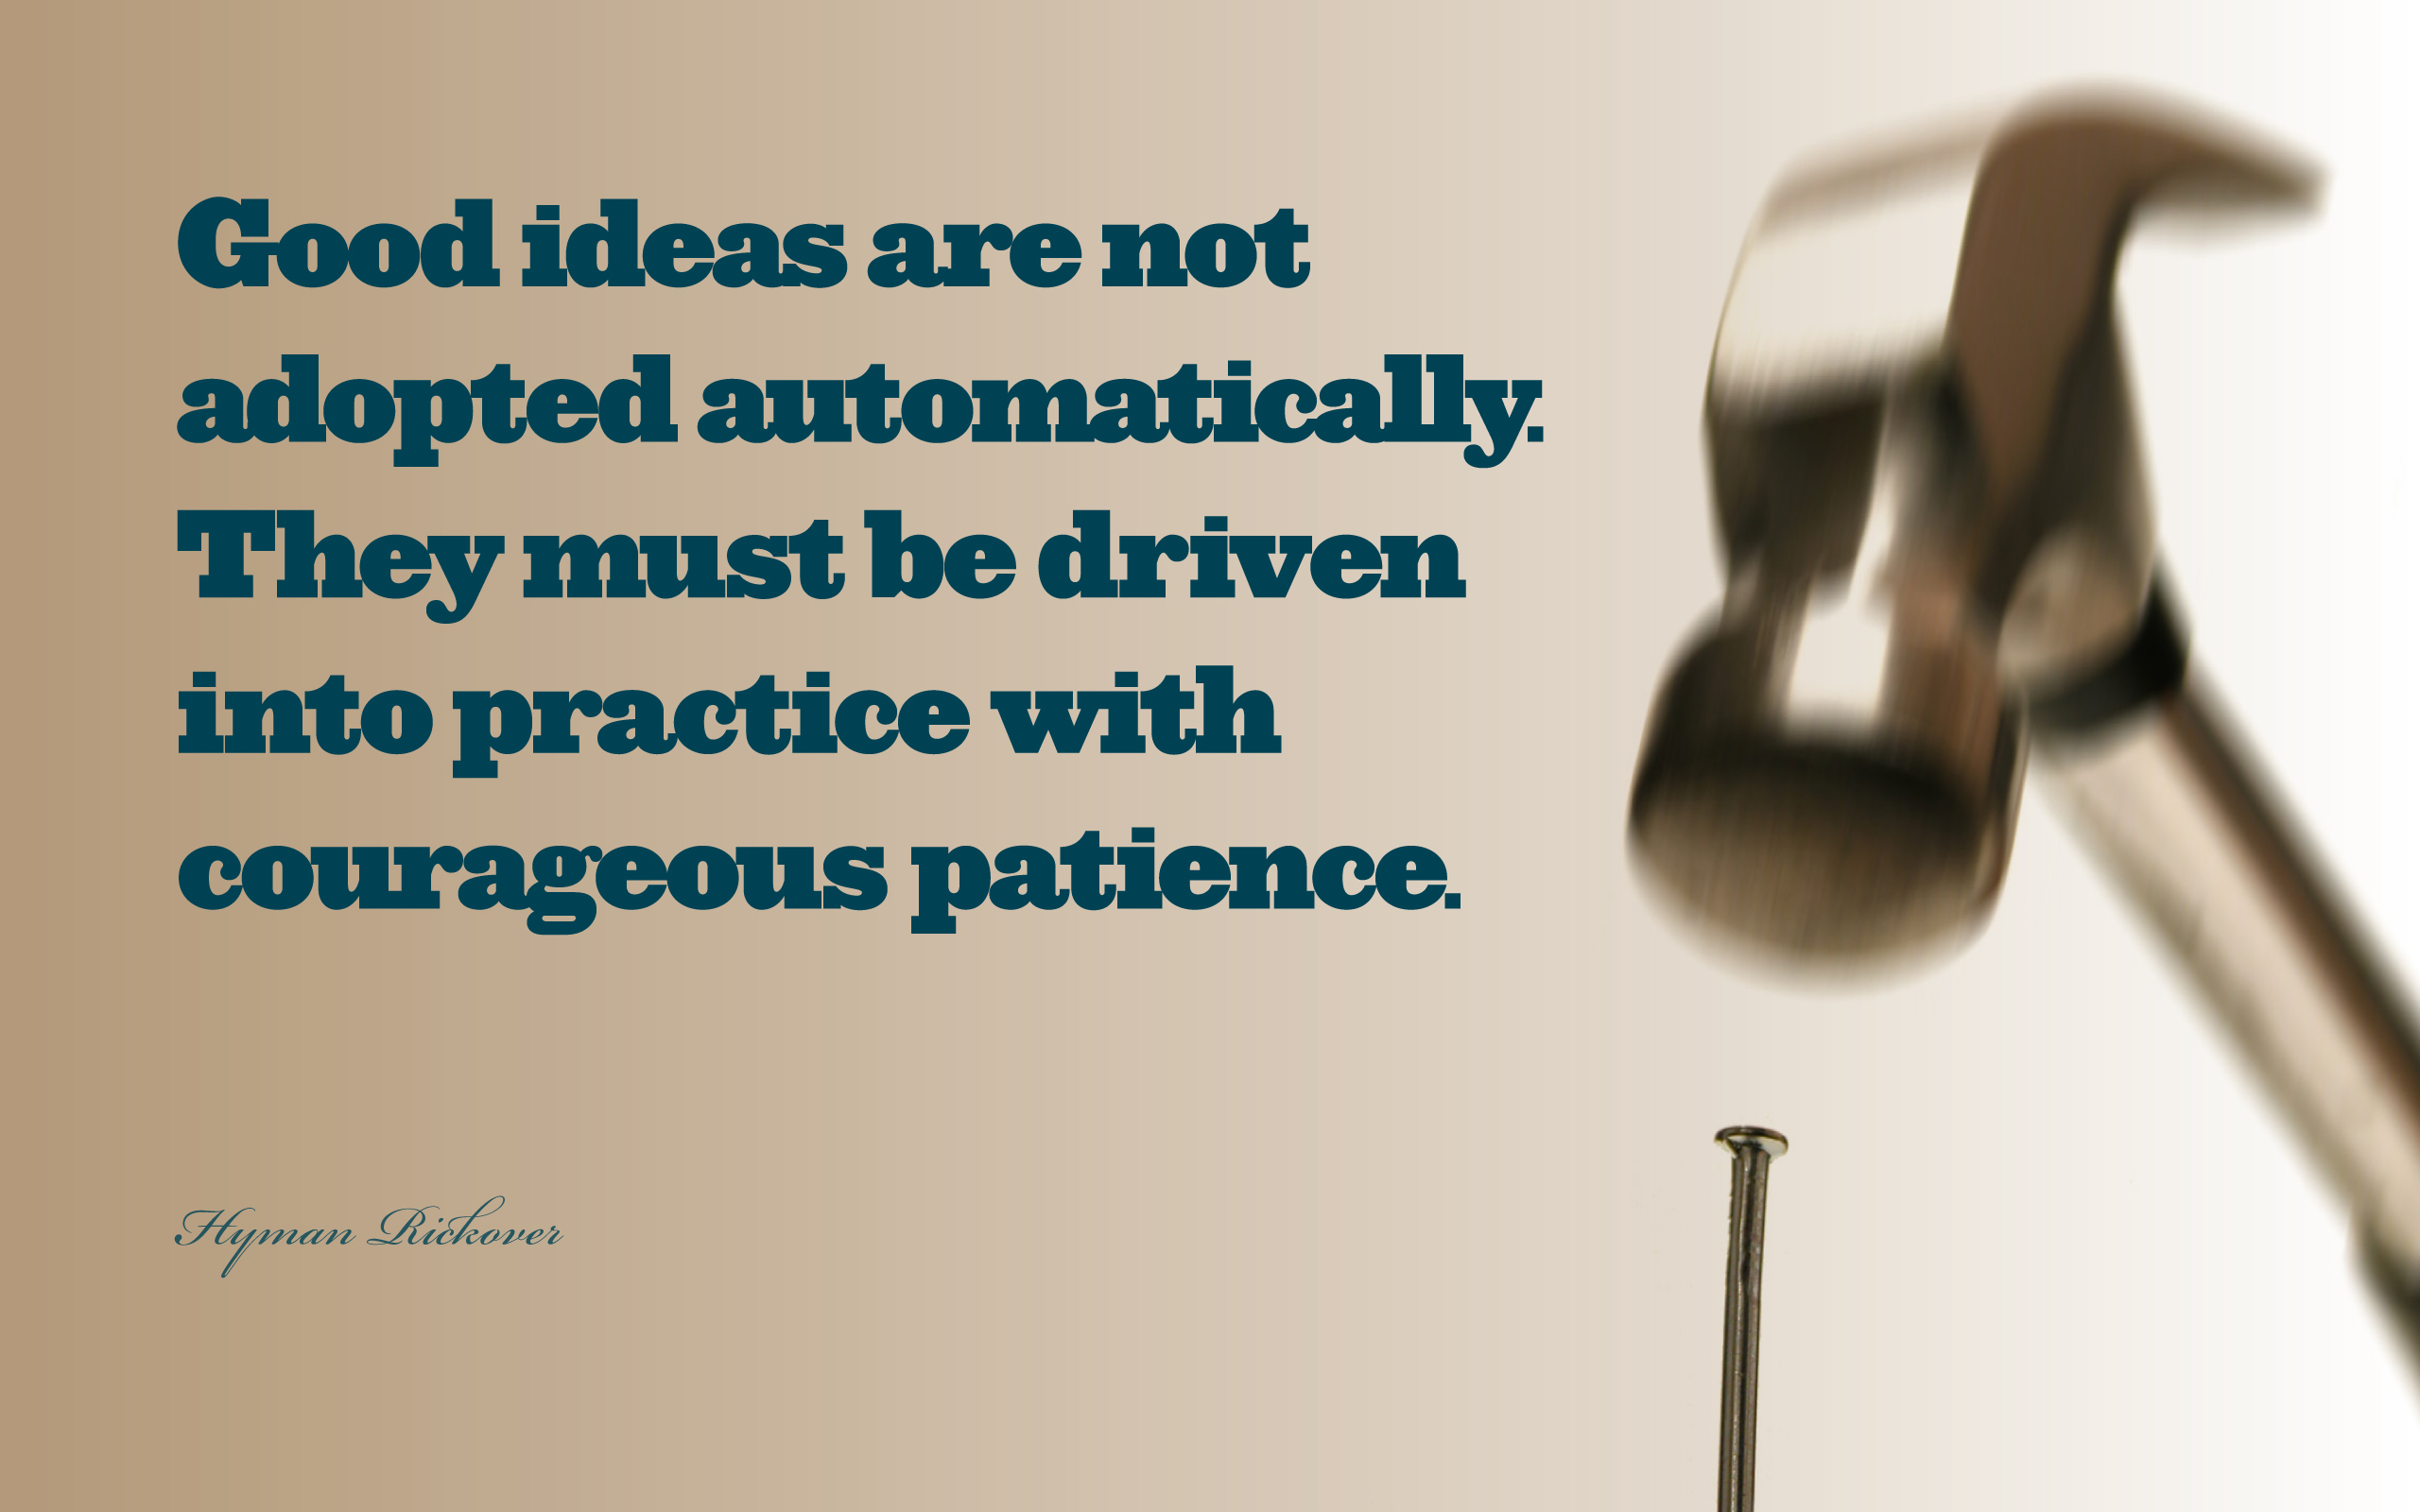 Good ideas are not adopted automatically. They must be driven into practice with courageous patience. — Hyman Rickover [2560×1600]